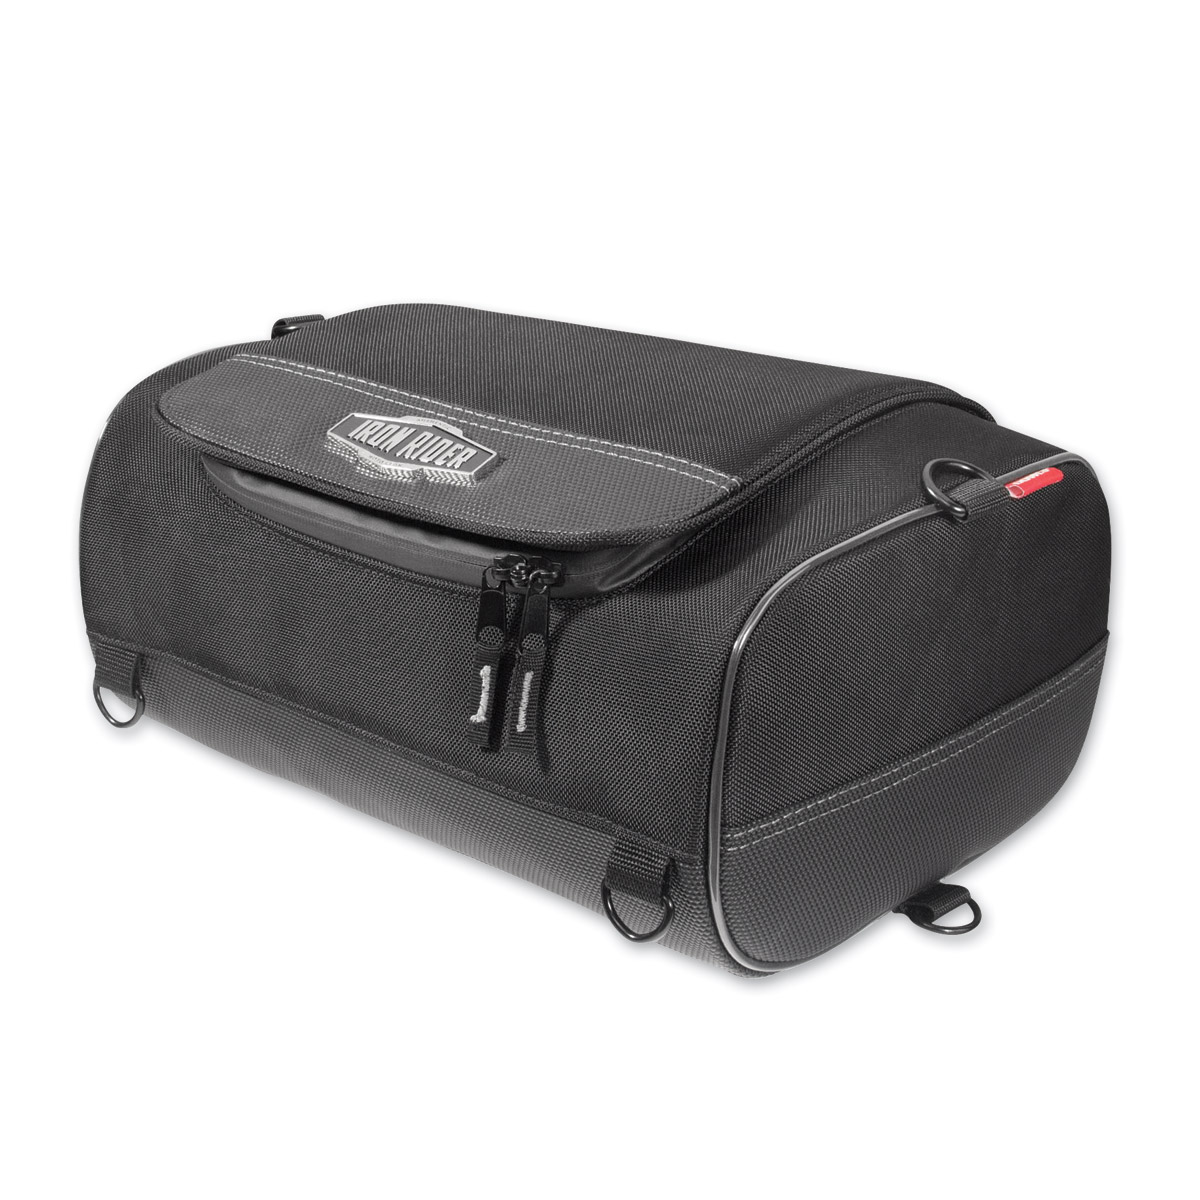 Dowco Iron Rider Roll Bag